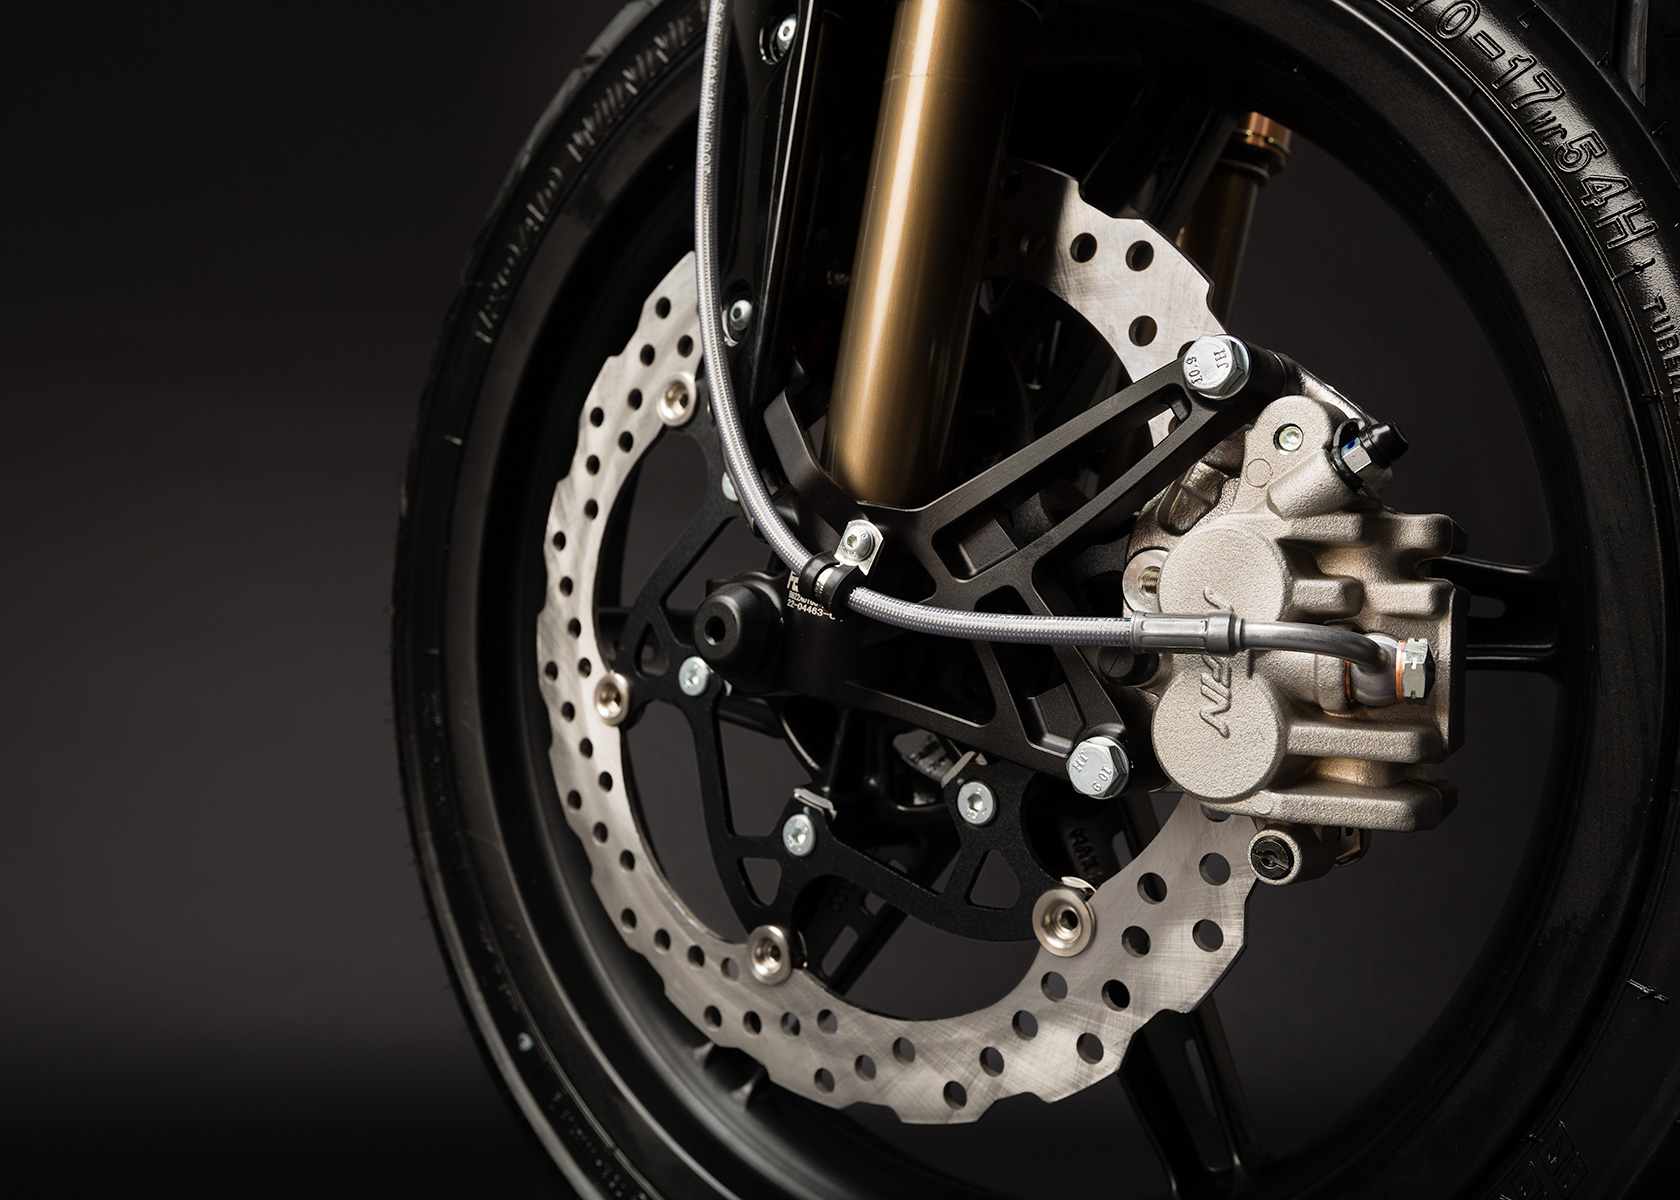 2013 Zero S Electric Motorcycle: Front brake